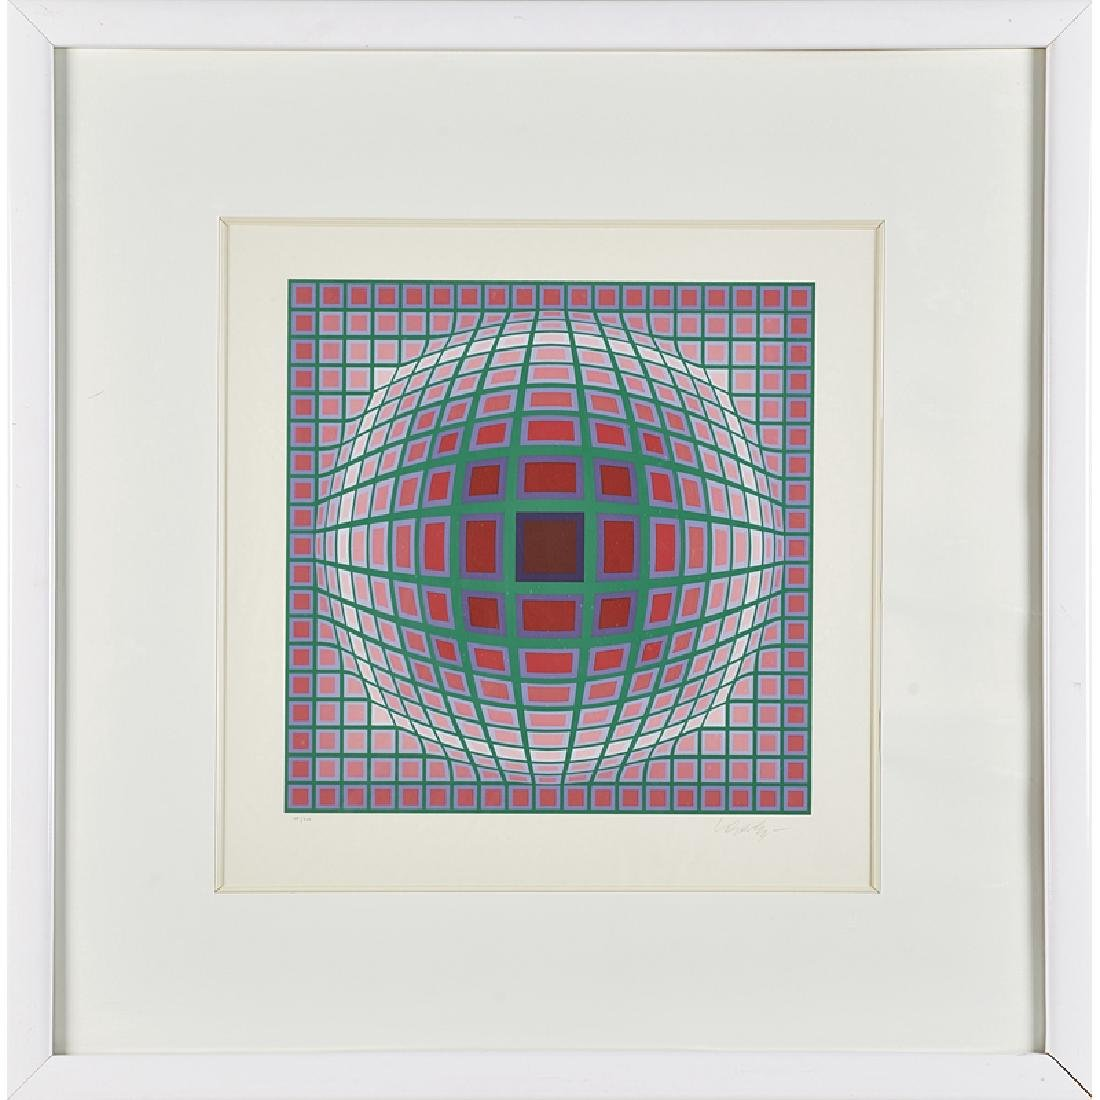 VICTOR VASARELY (French/Hungarian, 1908-1997)